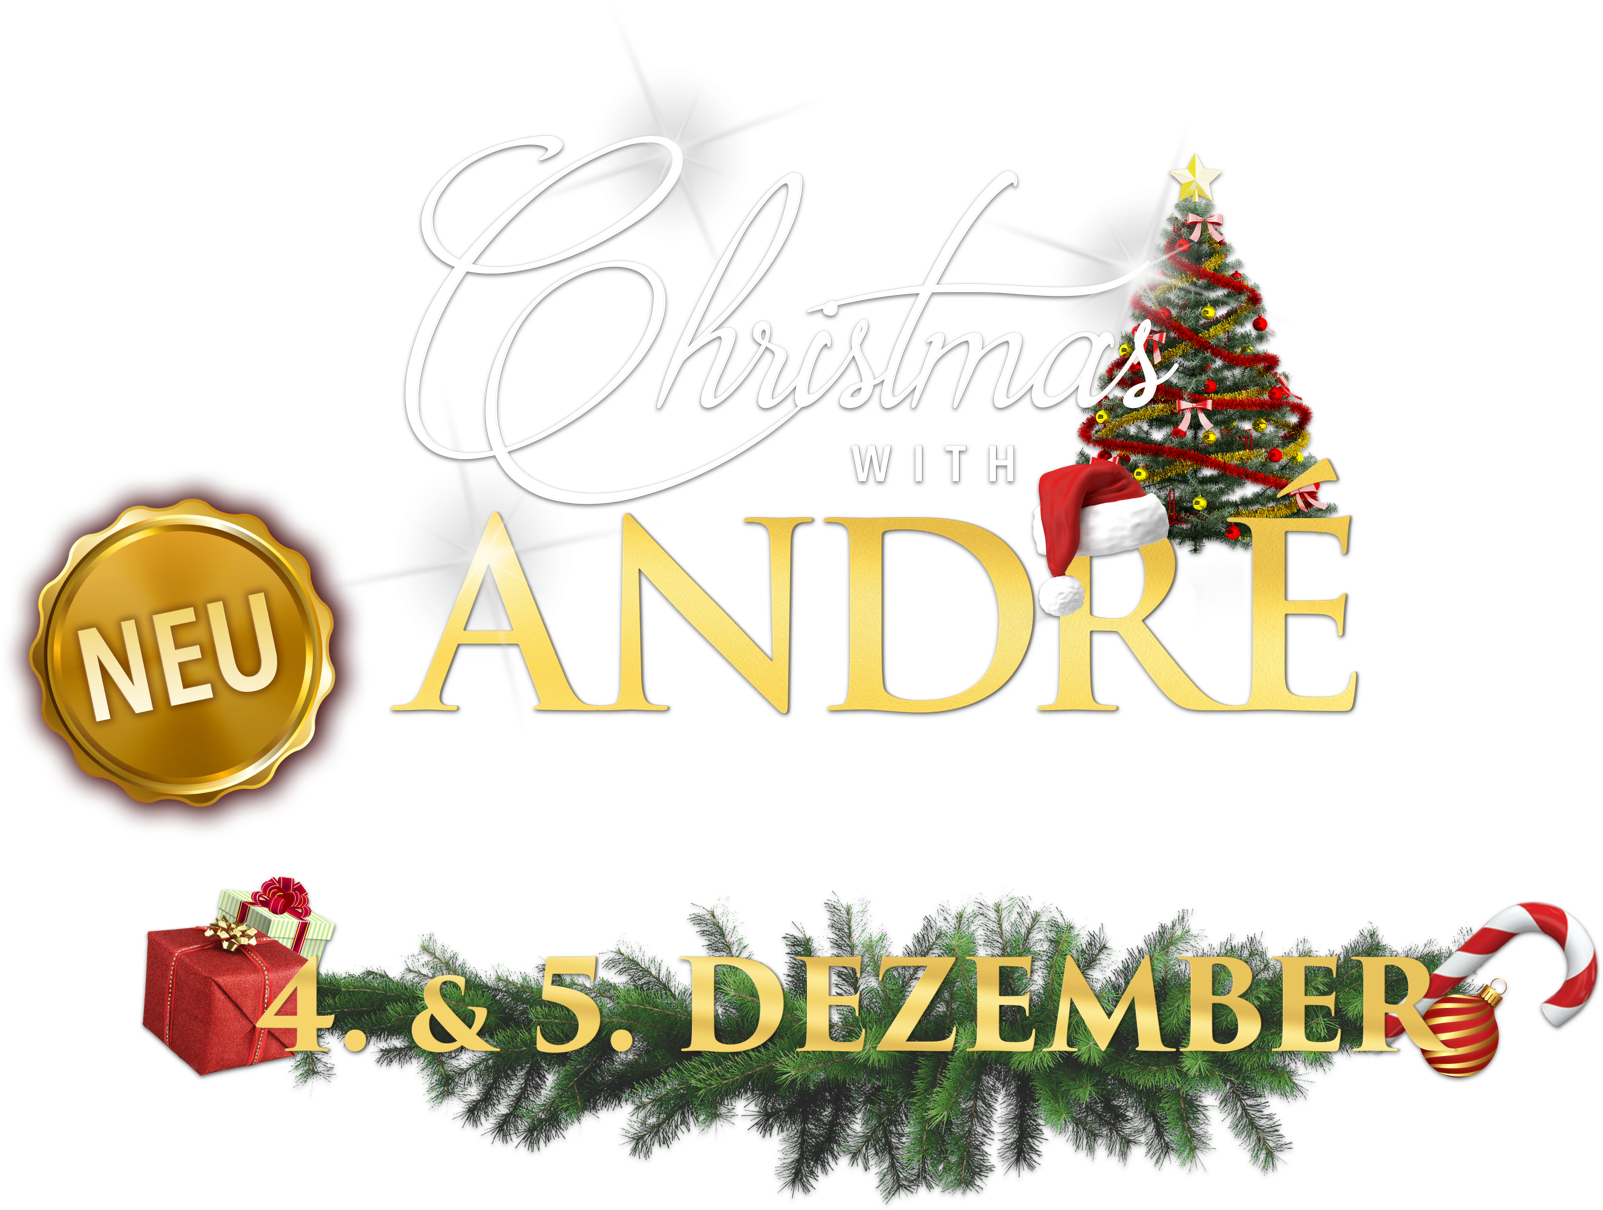 Title or logo for André Rieu: Christmas with André